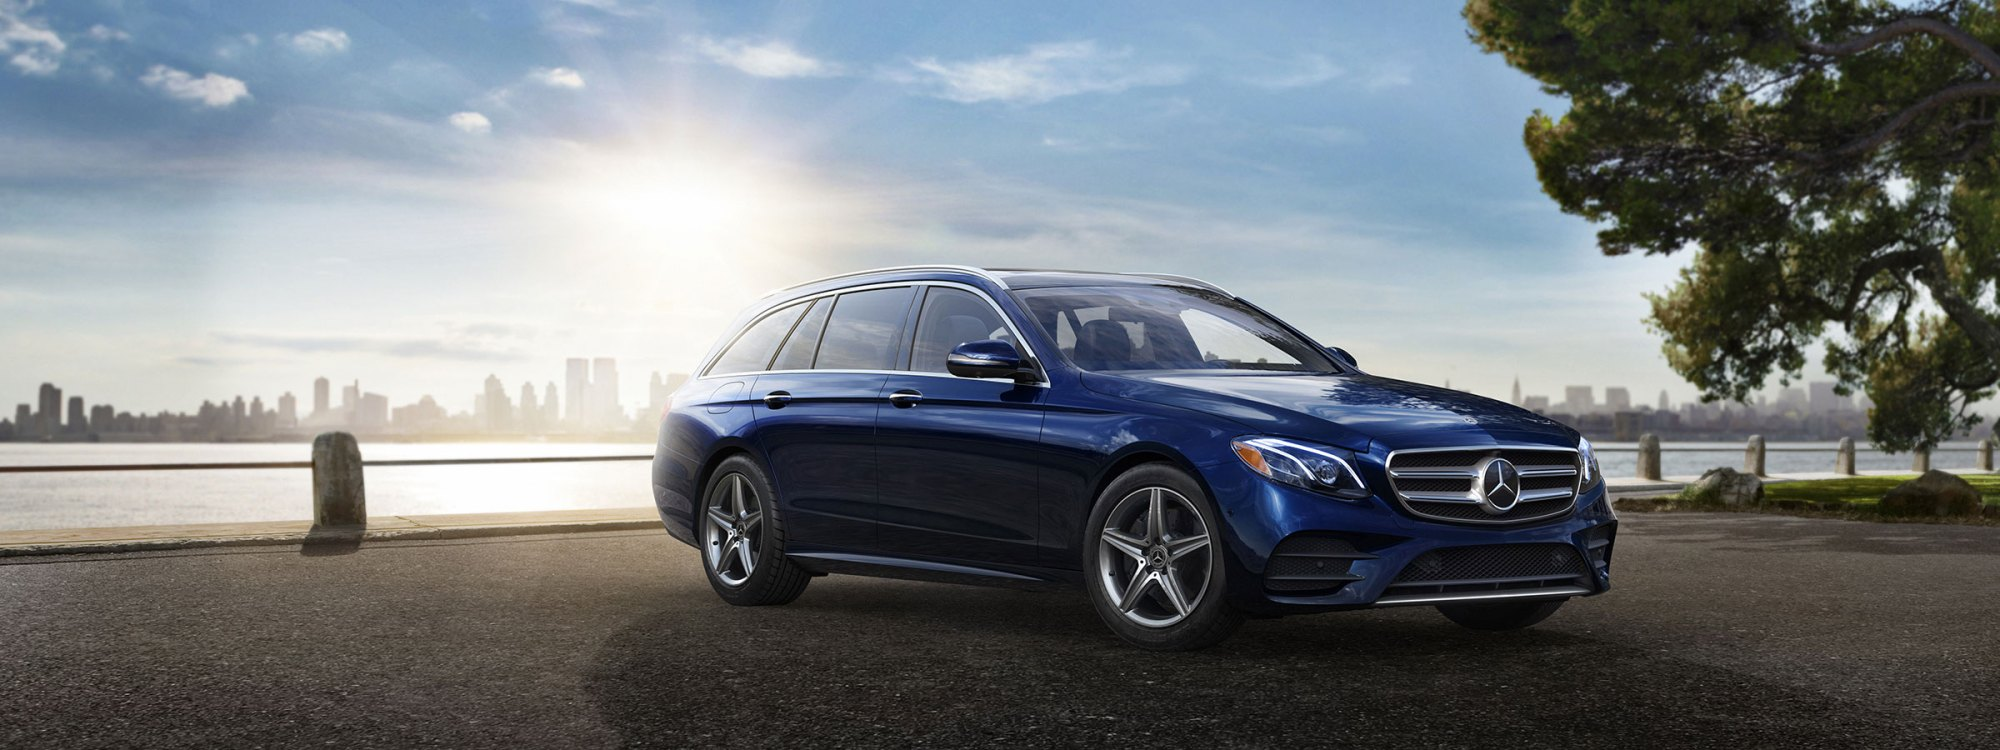 hight resolution of 2018 e class wagon